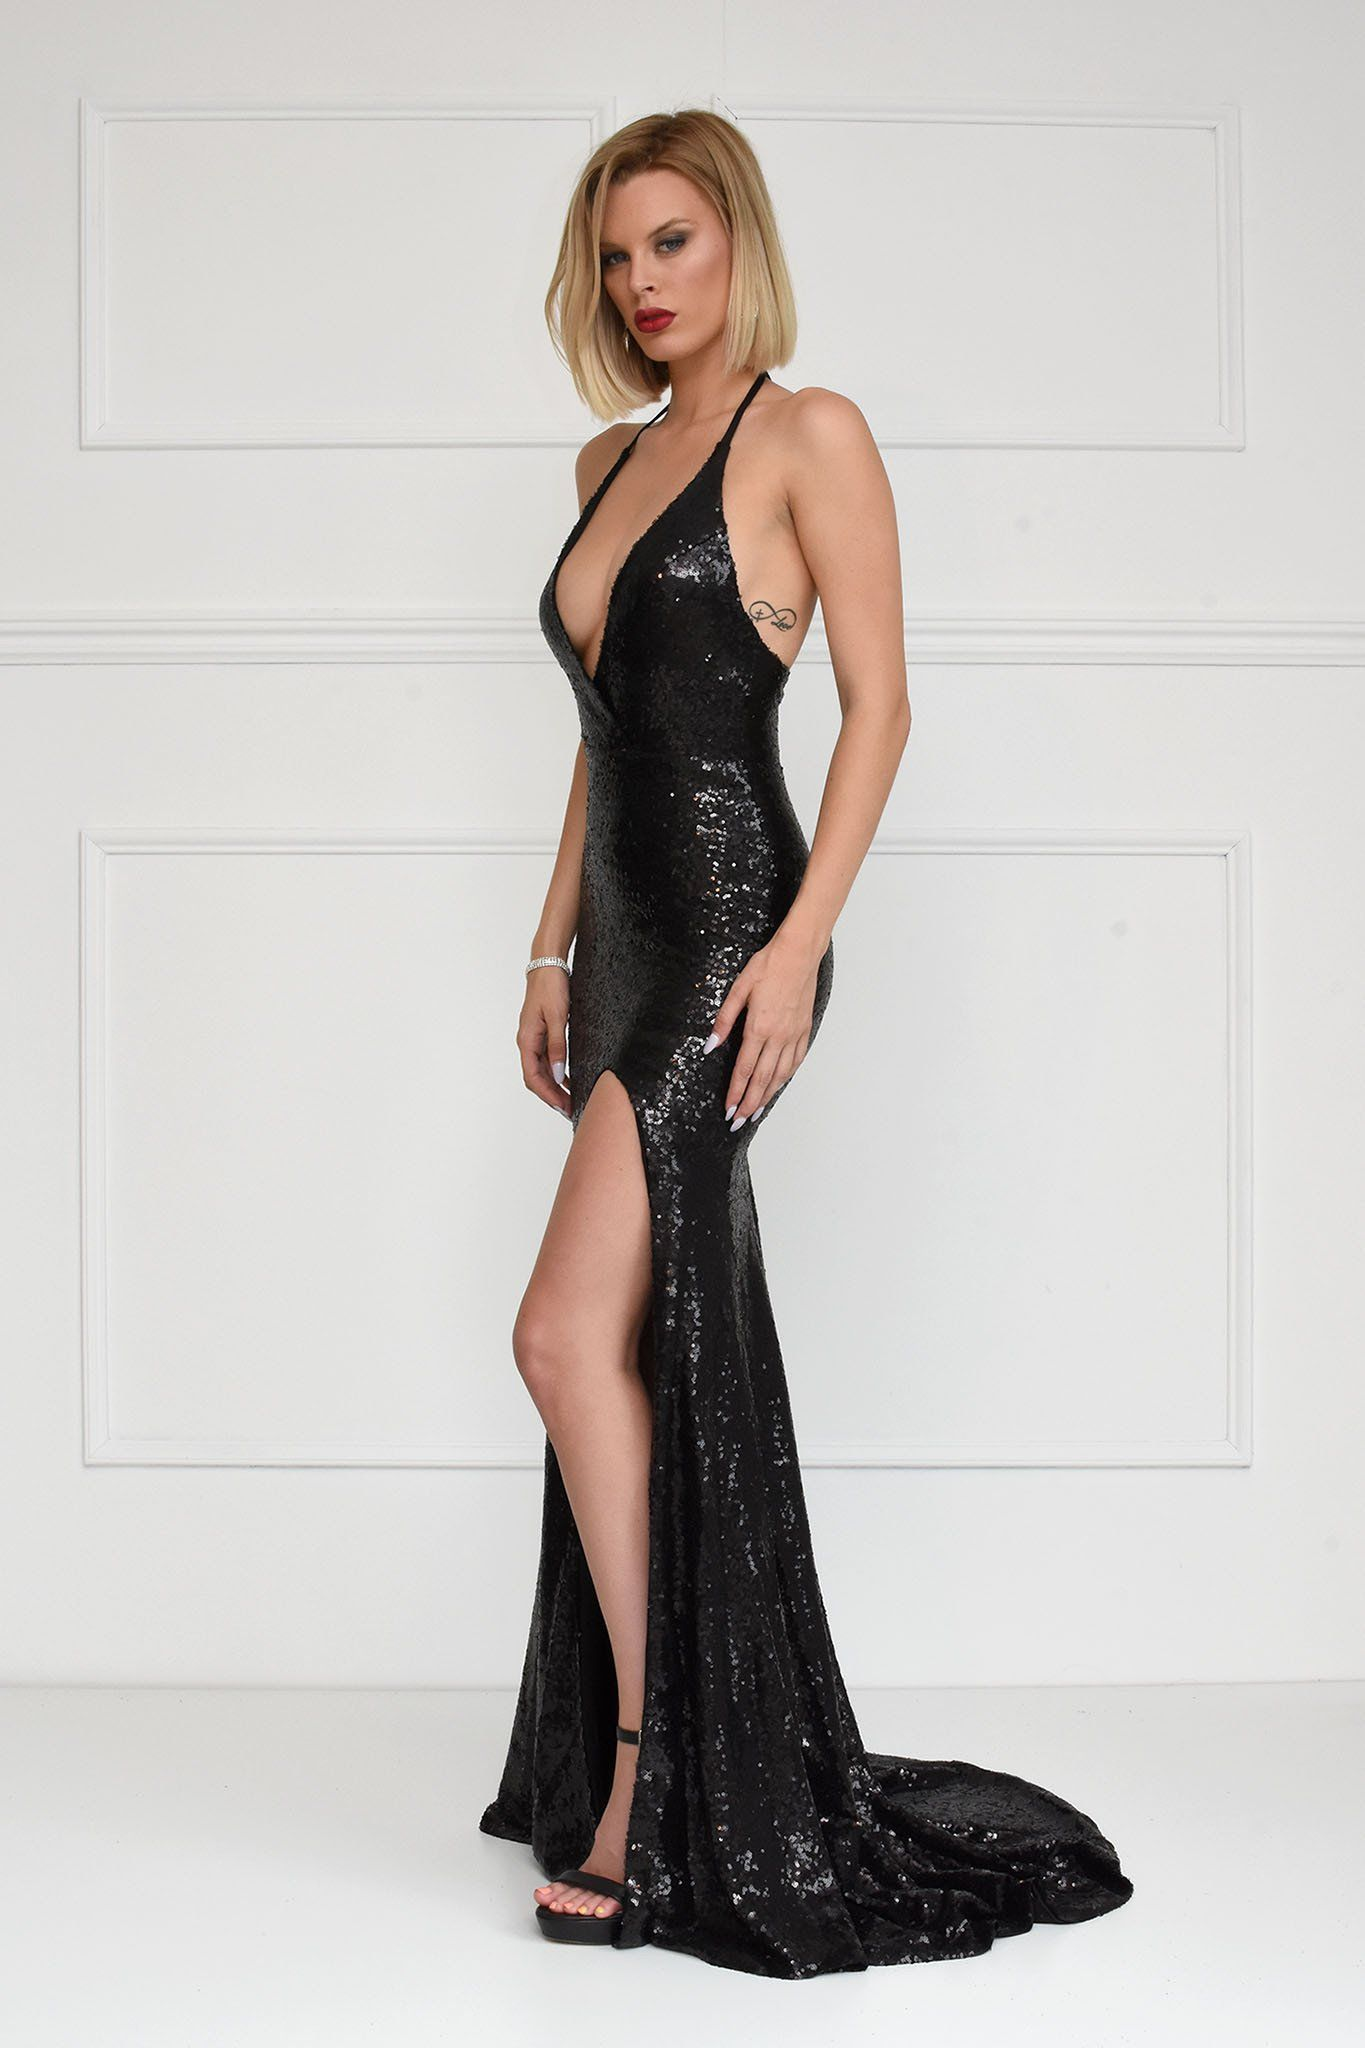 96768e3574e09 ... Black sleeveless sequin mermaid gown with deep V neckline